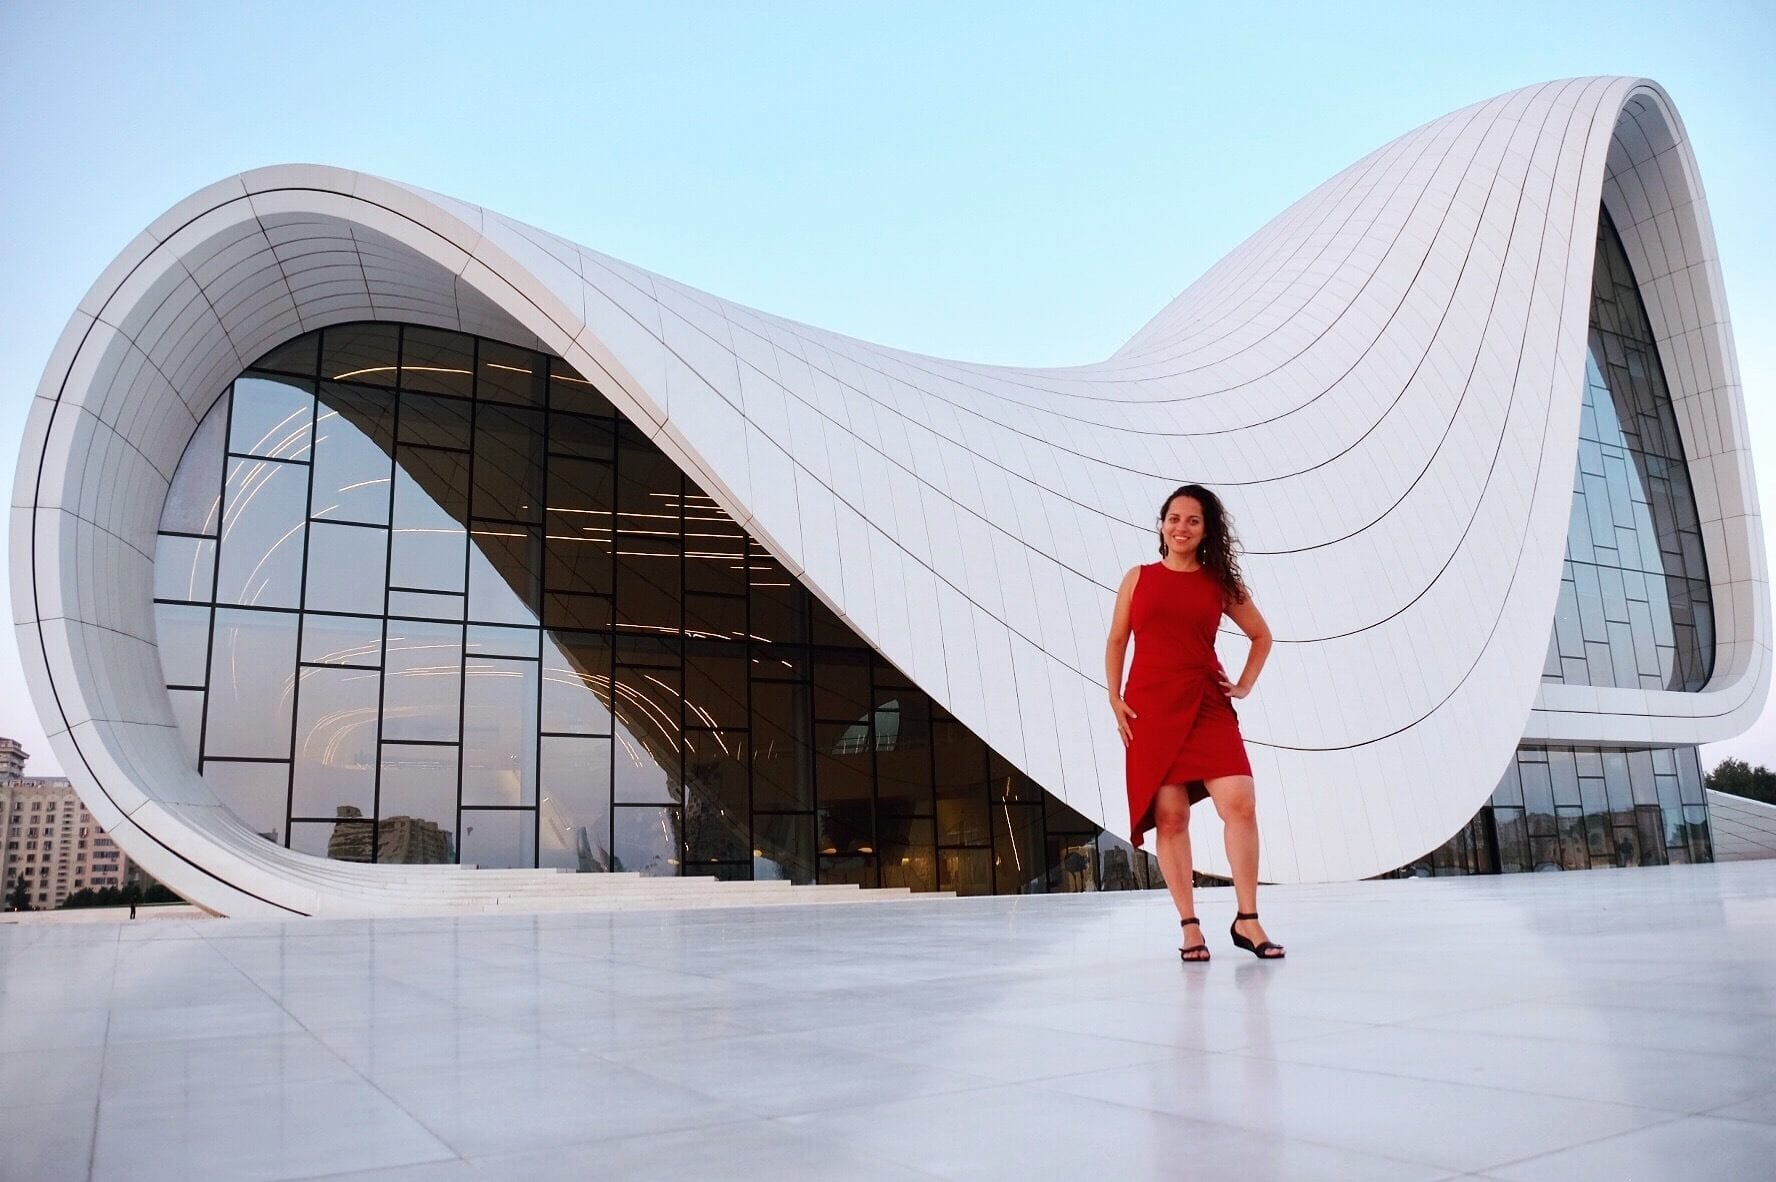 Kate stands in front of a modern building shaped like a sideways S, standing in a red dress.